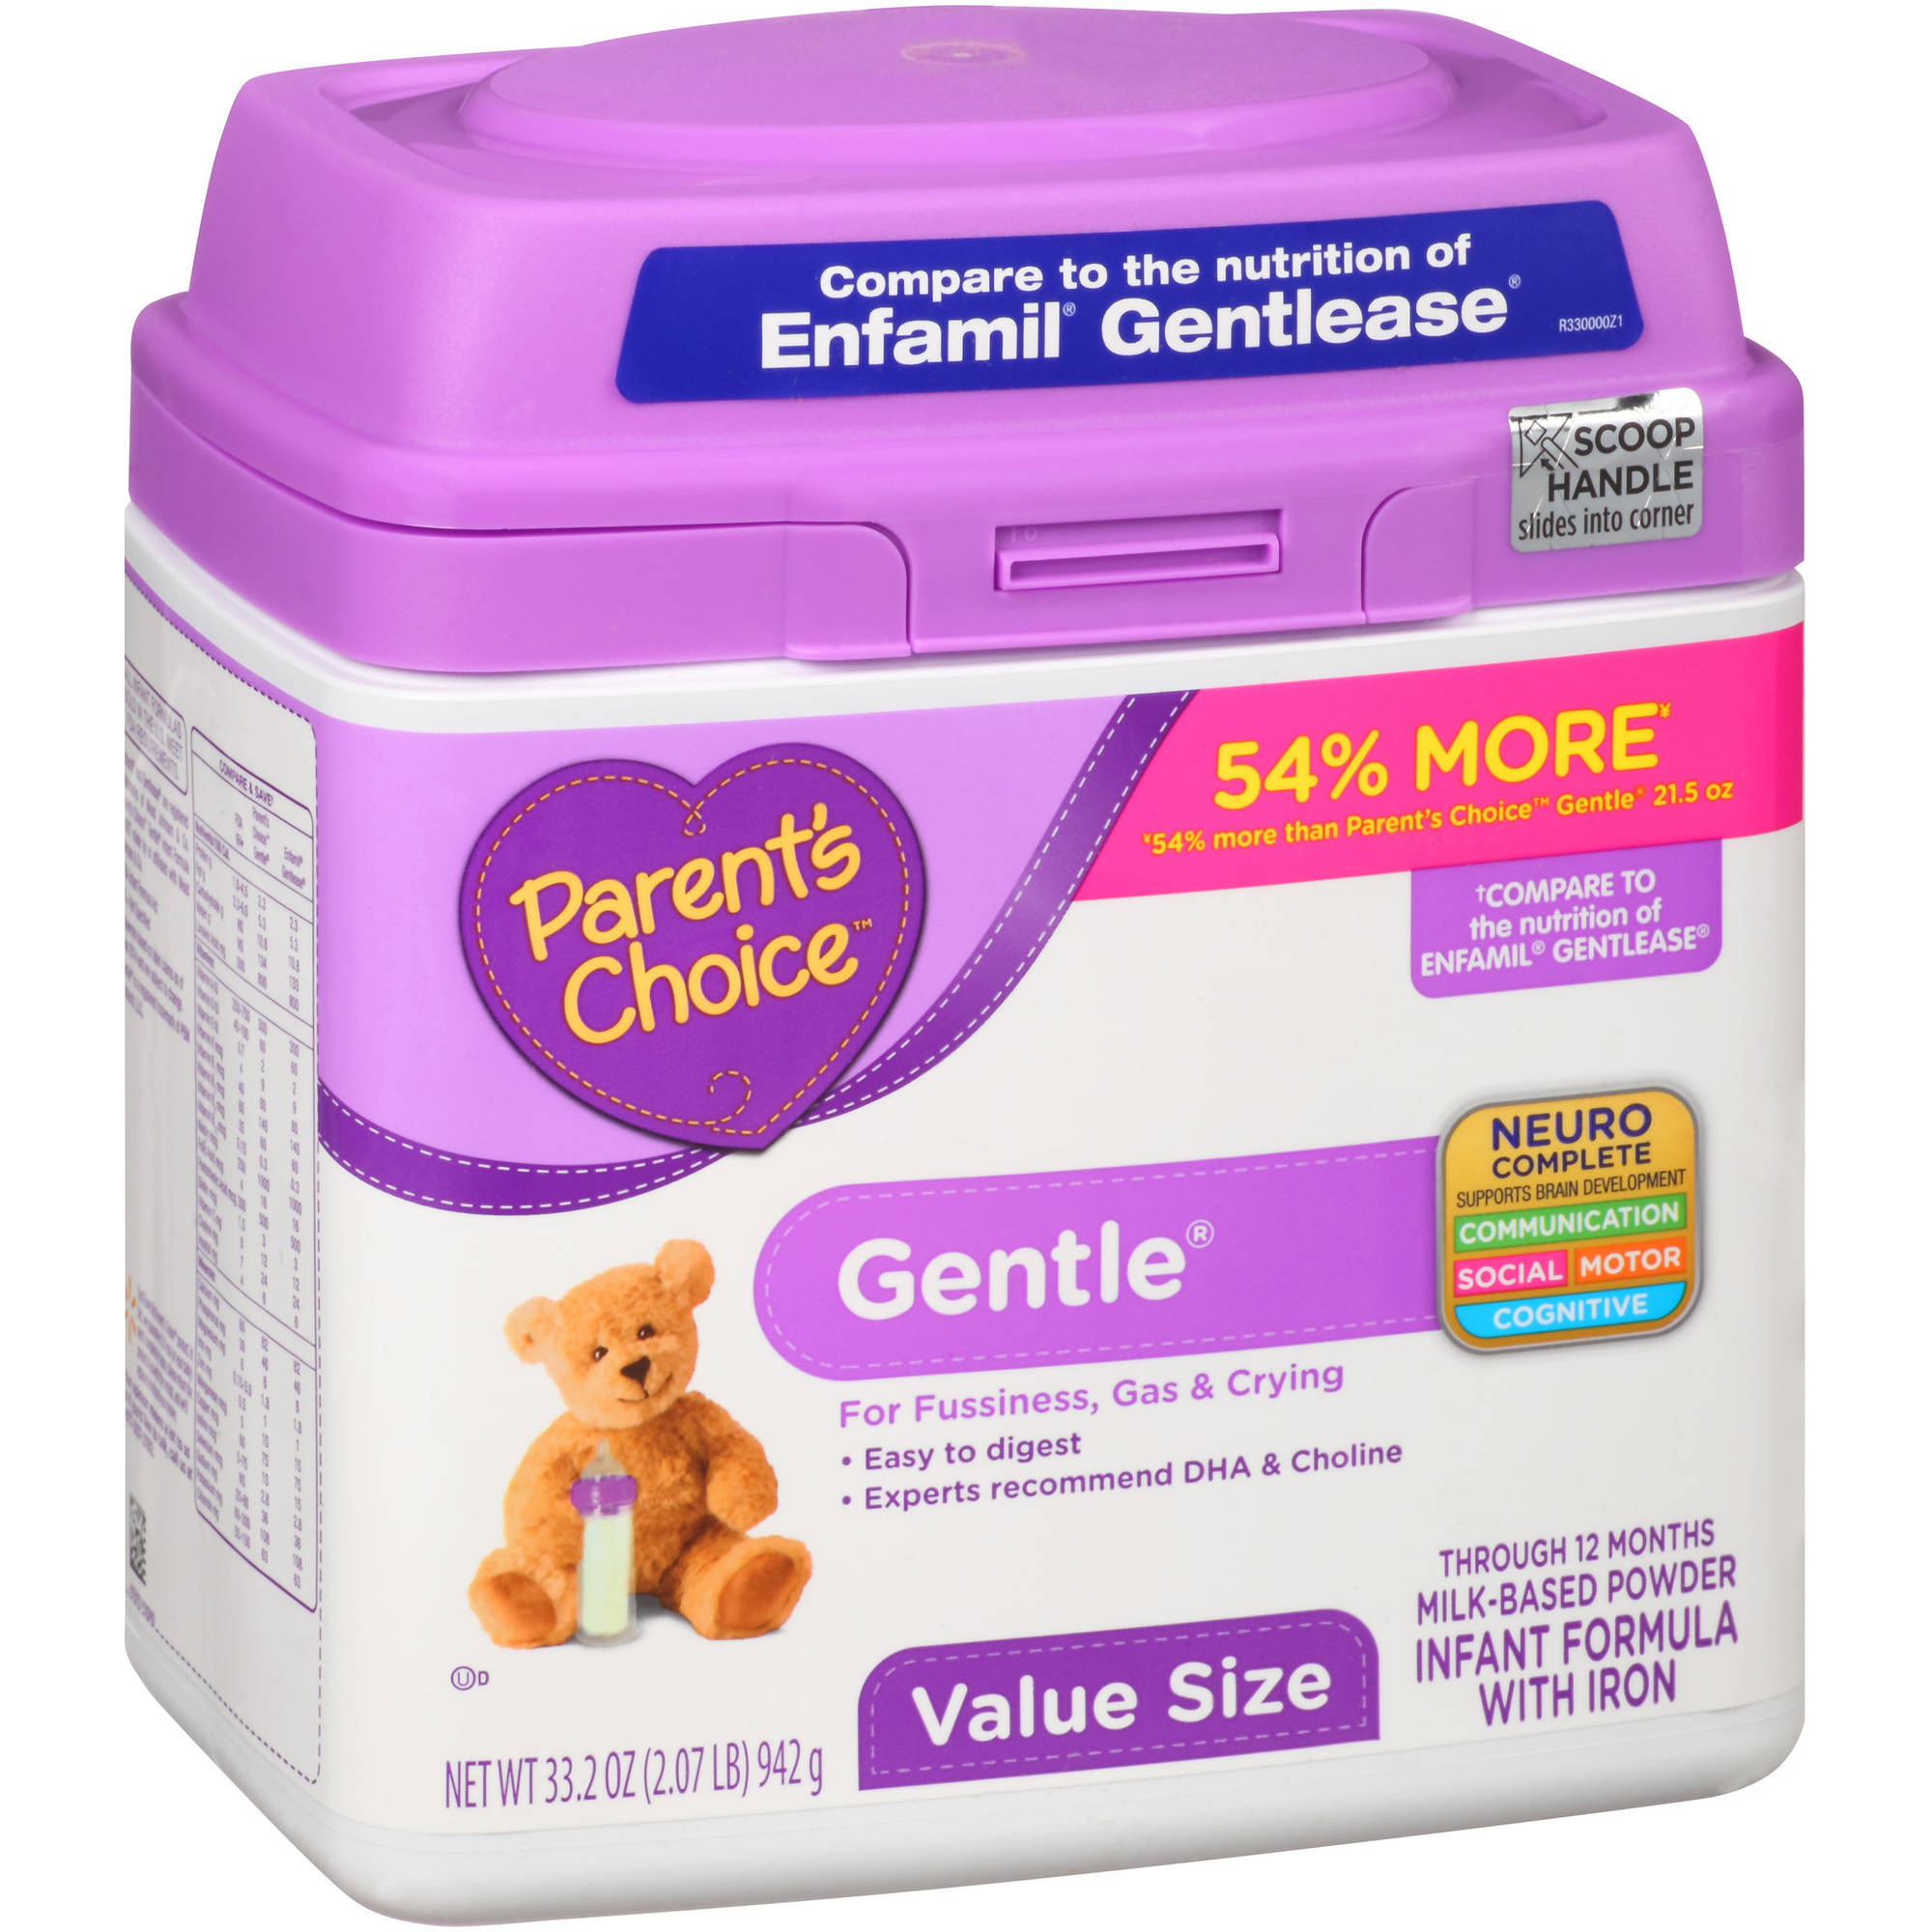 Parent's Choice Gentle Powder Infant Formula with Iron, 33.2oz